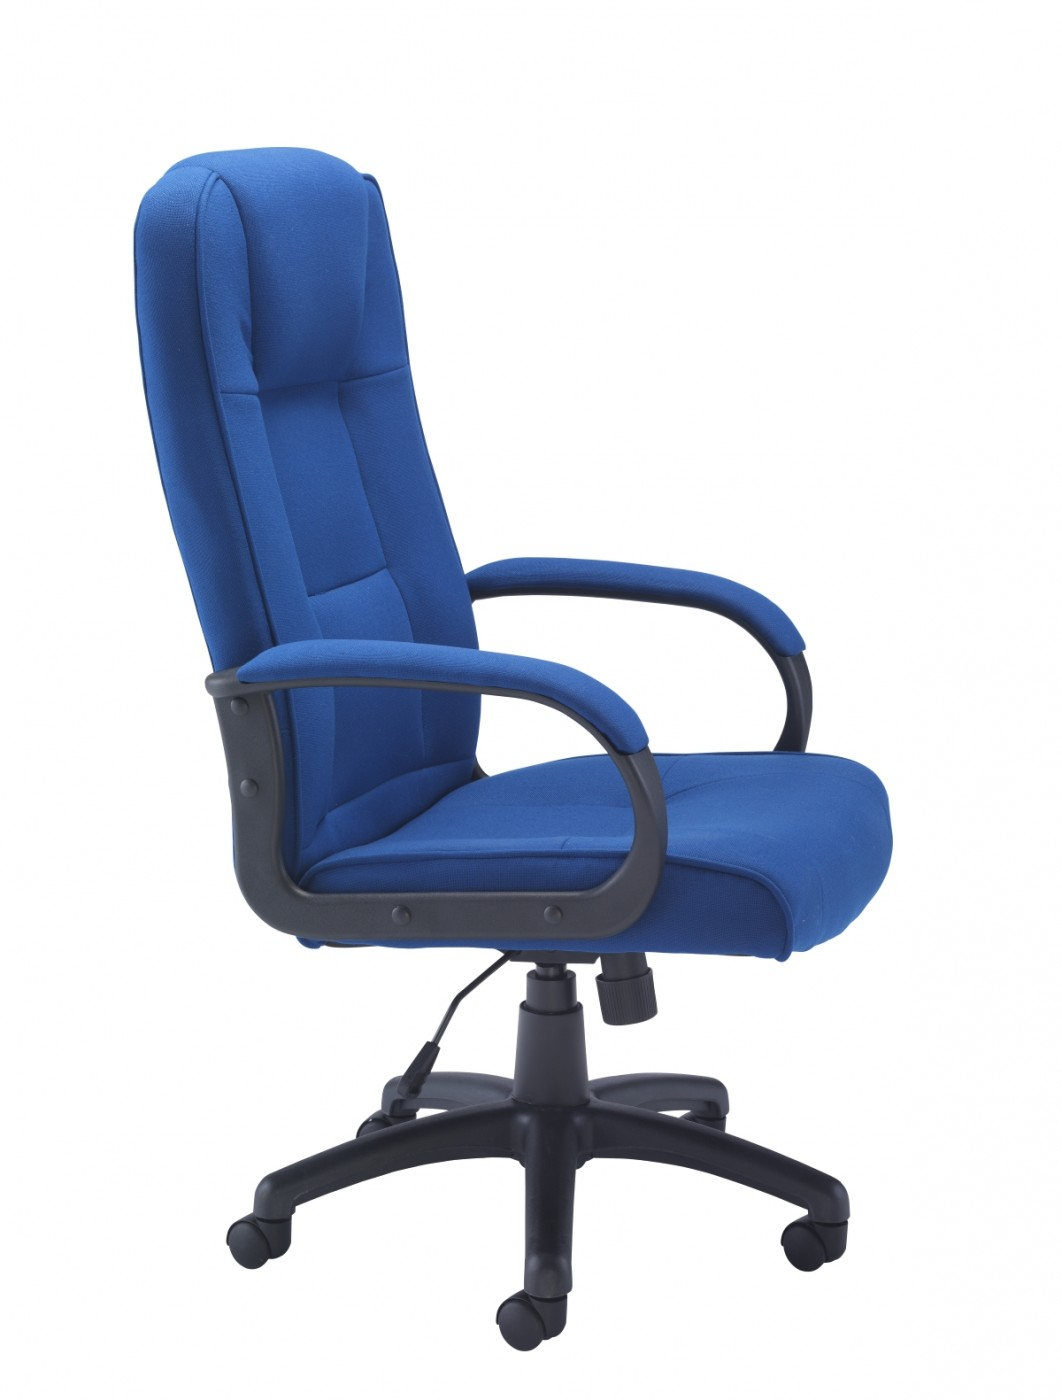 fabric for office chair upholstery sure fit covers amazon chairs tc keno ch0137 121